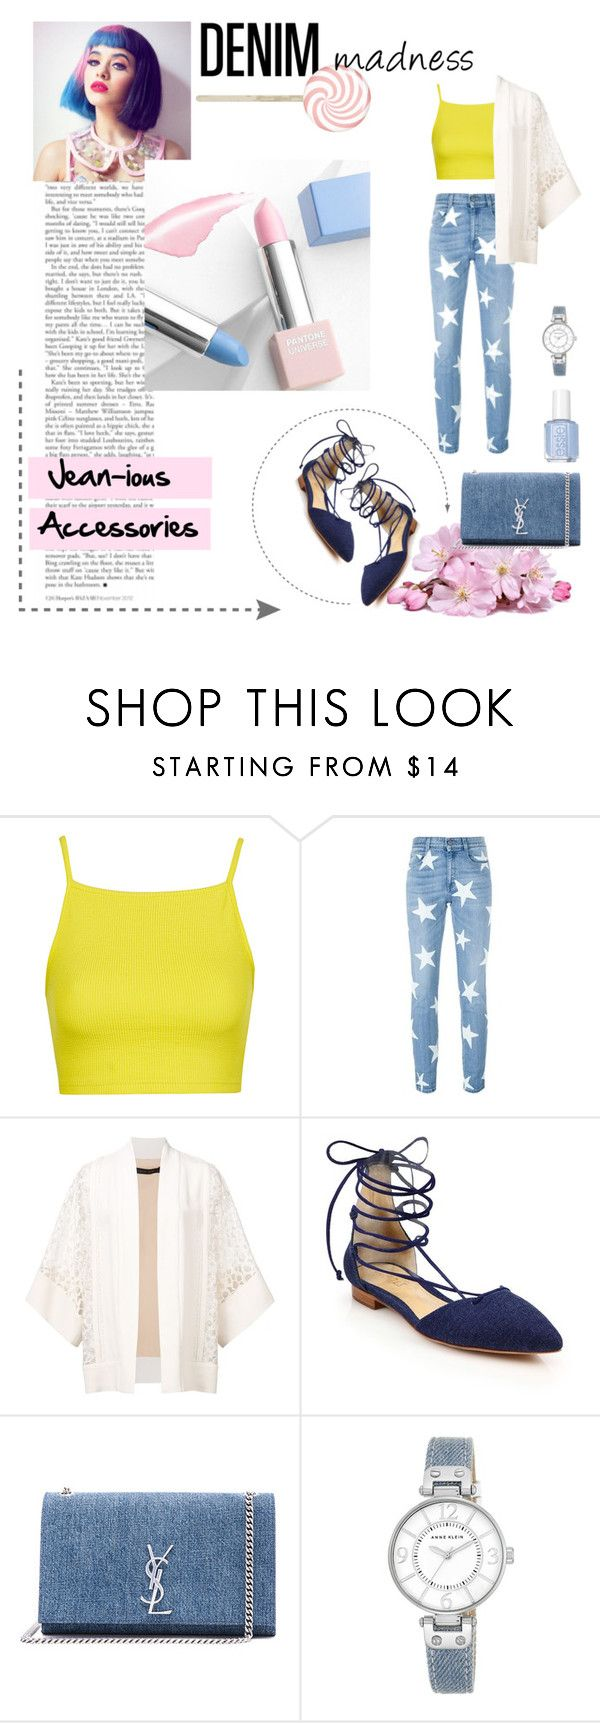 """Denim candy"" by pcangaroza ❤ liked on Polyvore featuring Topshop, STELLA McCARTNEY, Elie Saab, Schutz, Yves Saint Laurent, Sephora Collection, Anne Klein and Essie"